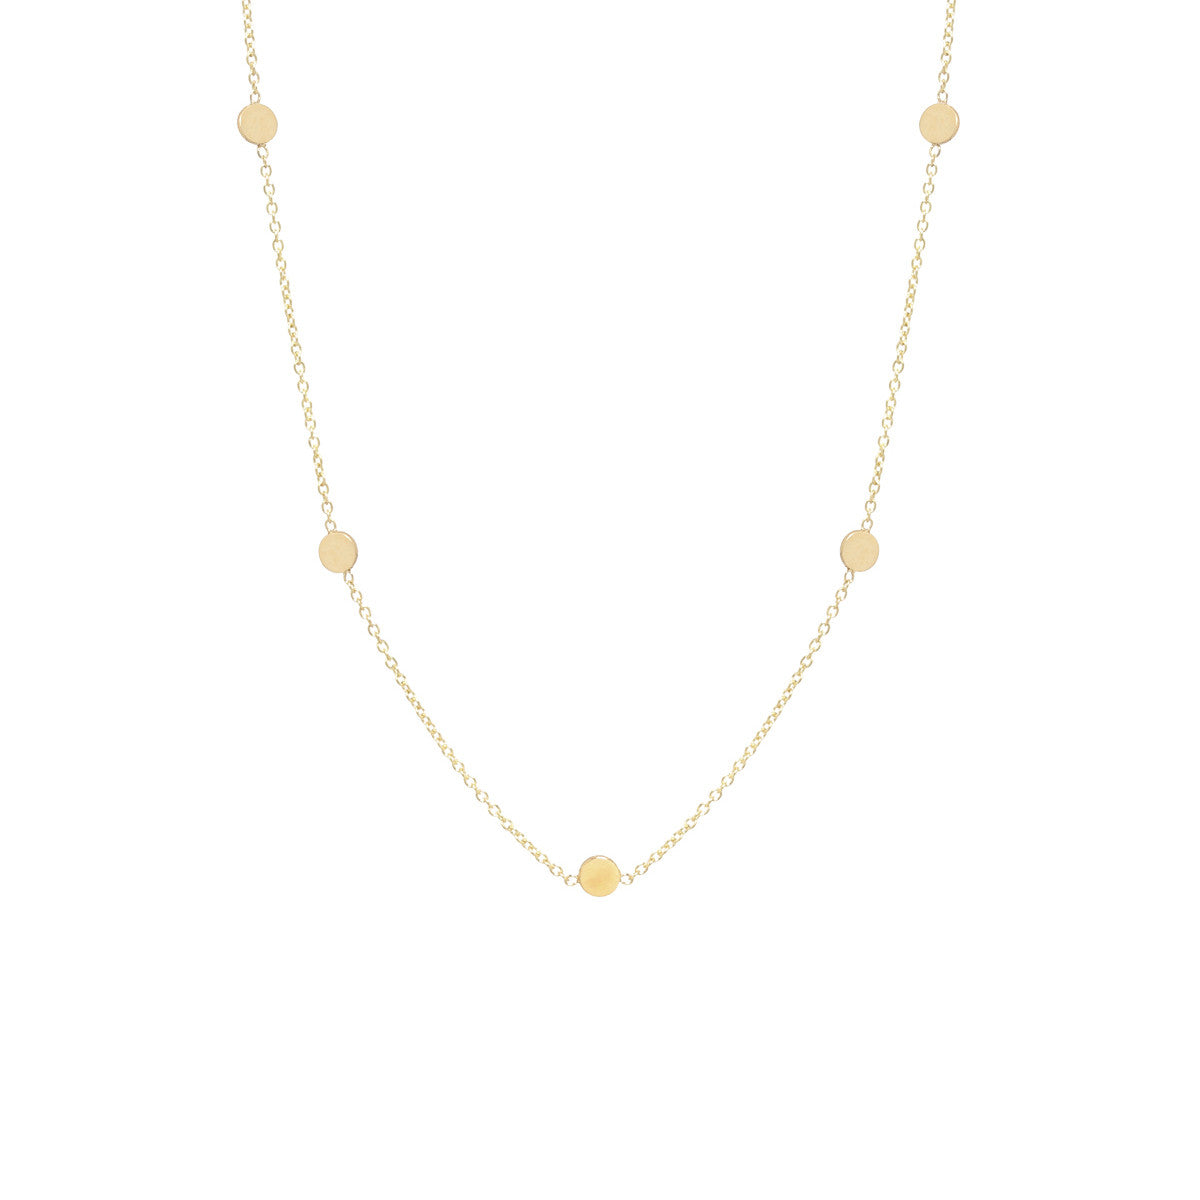 Zoë Chicco 14kt Yellow Gold Itty Bitty 5 Disc Necklace